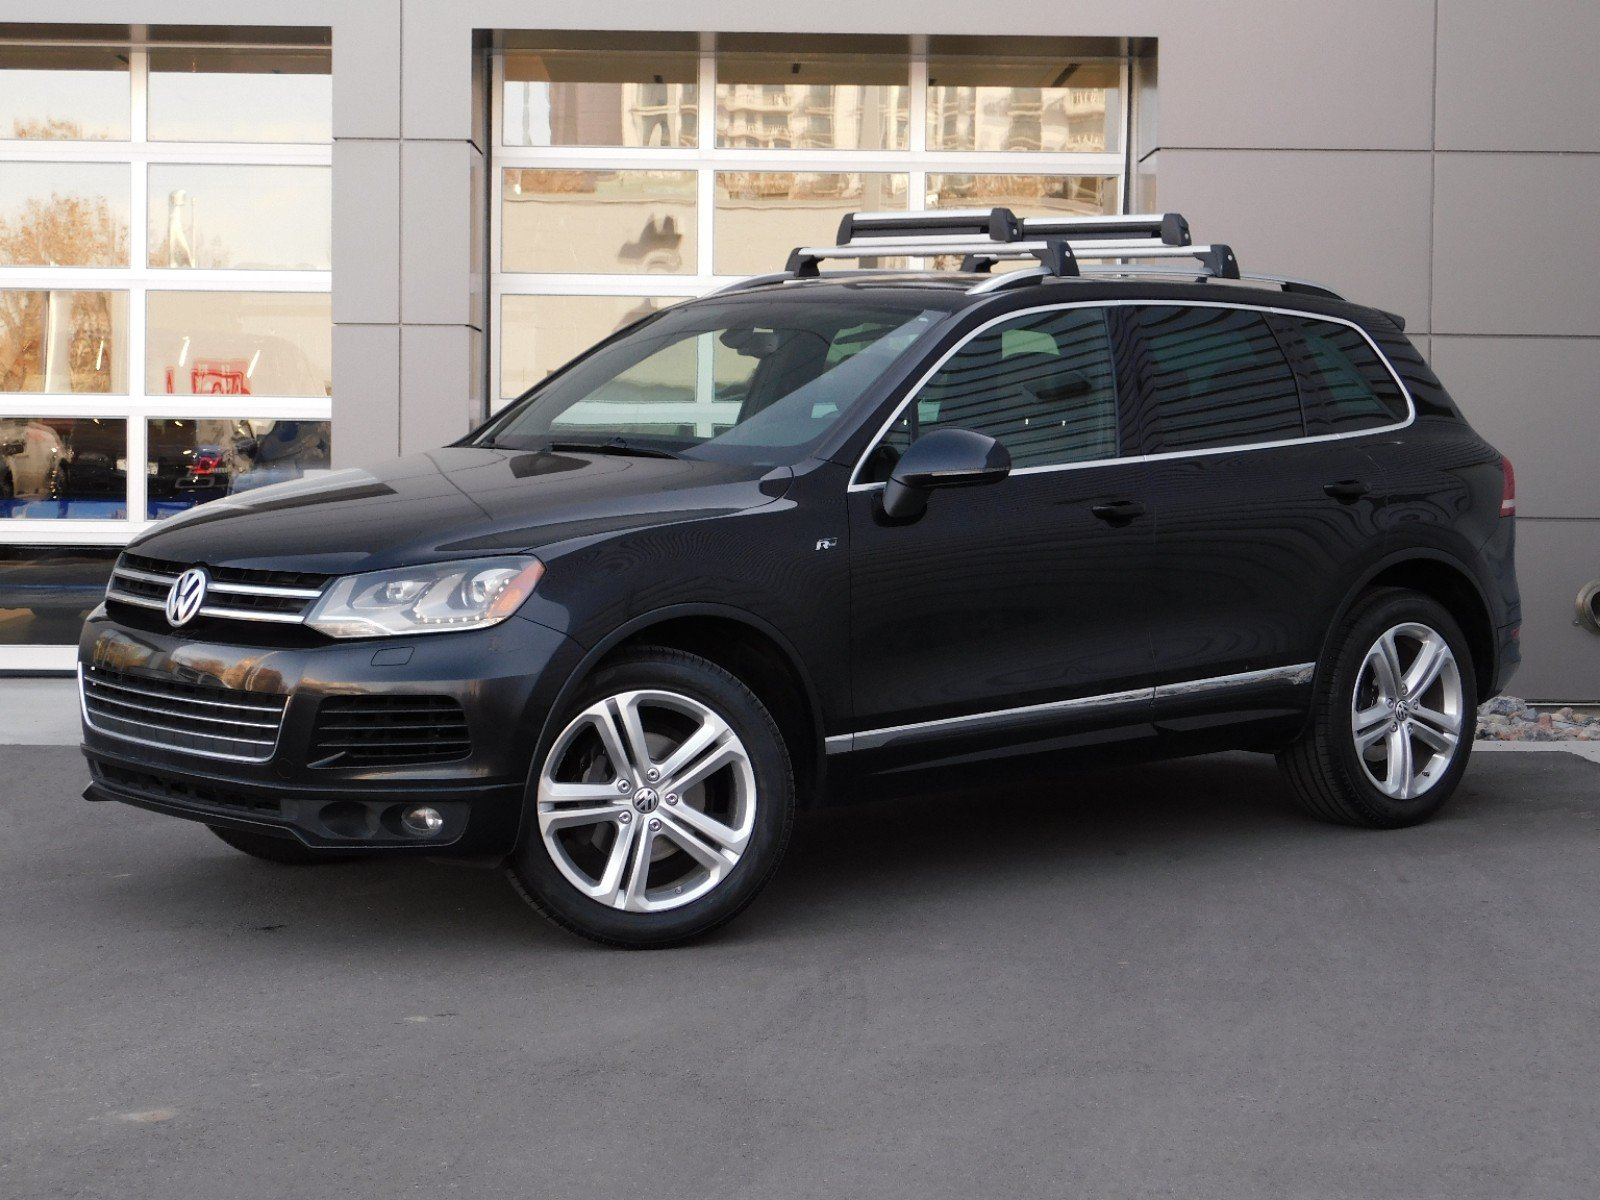 Pre-Owned 2014 Volkswagen Touareg WAGON 4 DOOR